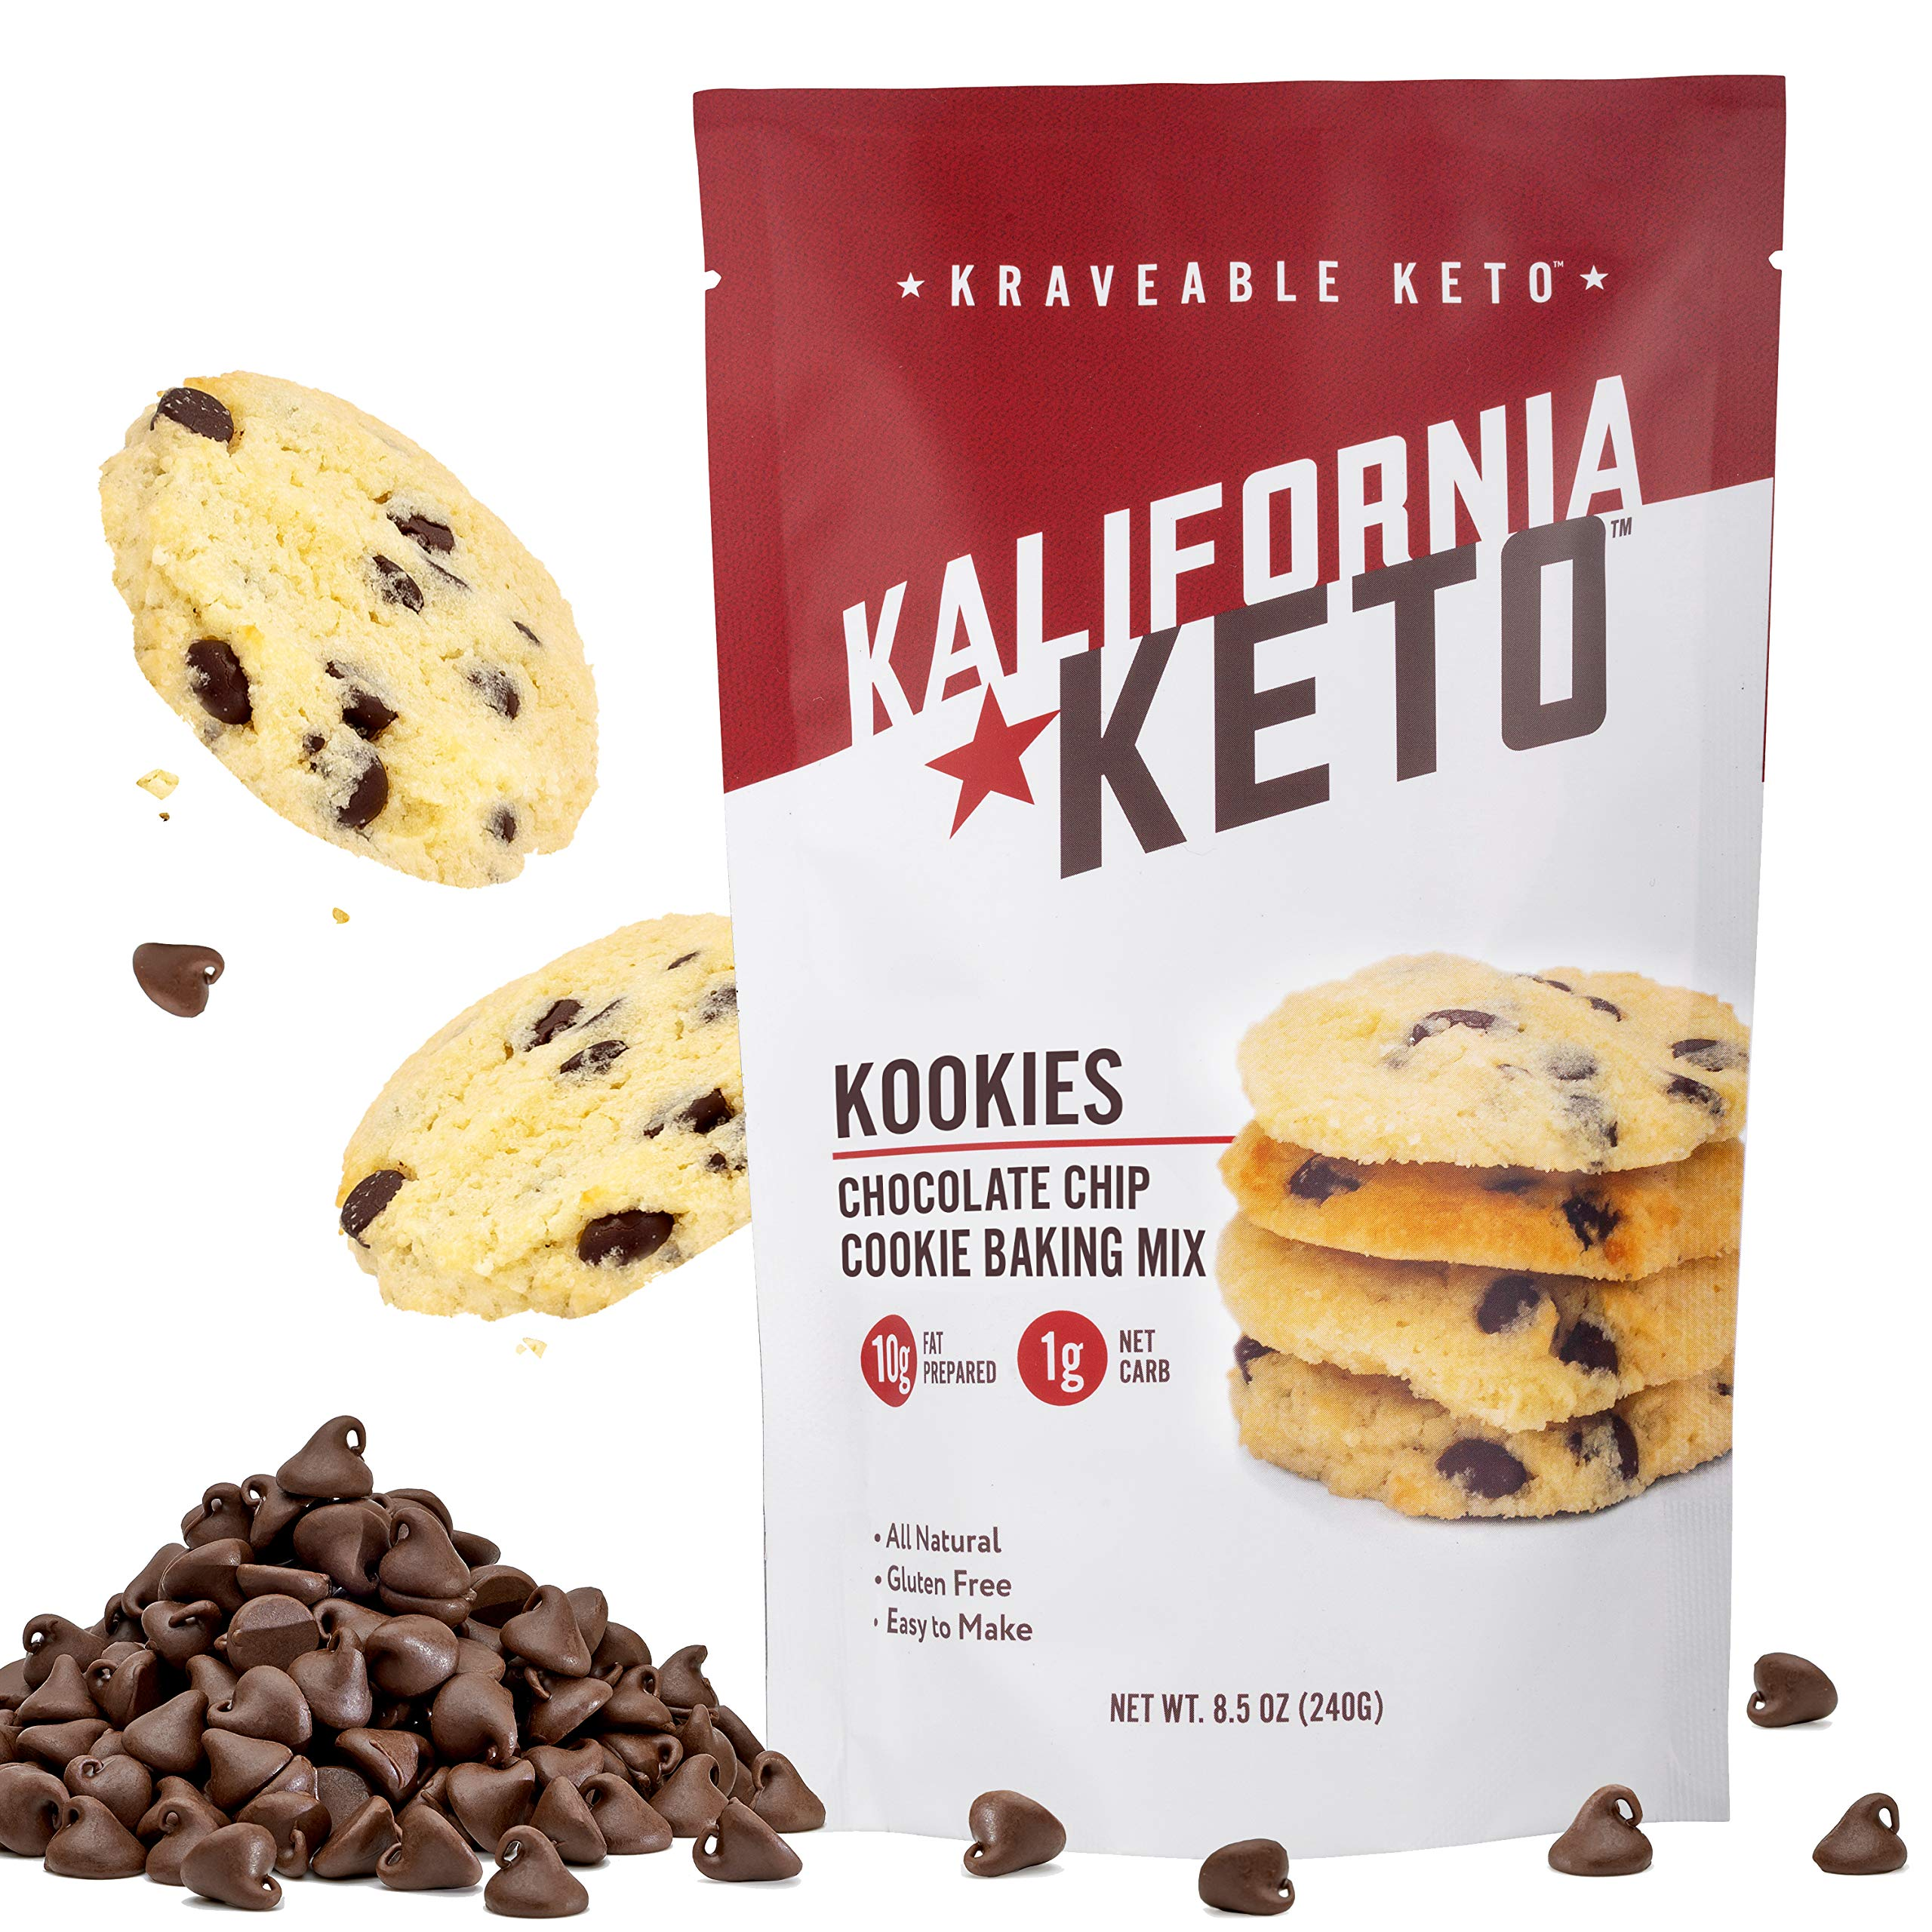 Kalifornia Keto Chocolate Chip Cookie Mix – Low Carb, Keto-friendly, and Sugar Free, 8.5 oz pack (15 Keto Cookies) – Gluten Free, Soy Free, Dairy Free, and Grain Free Keto Baking Mix